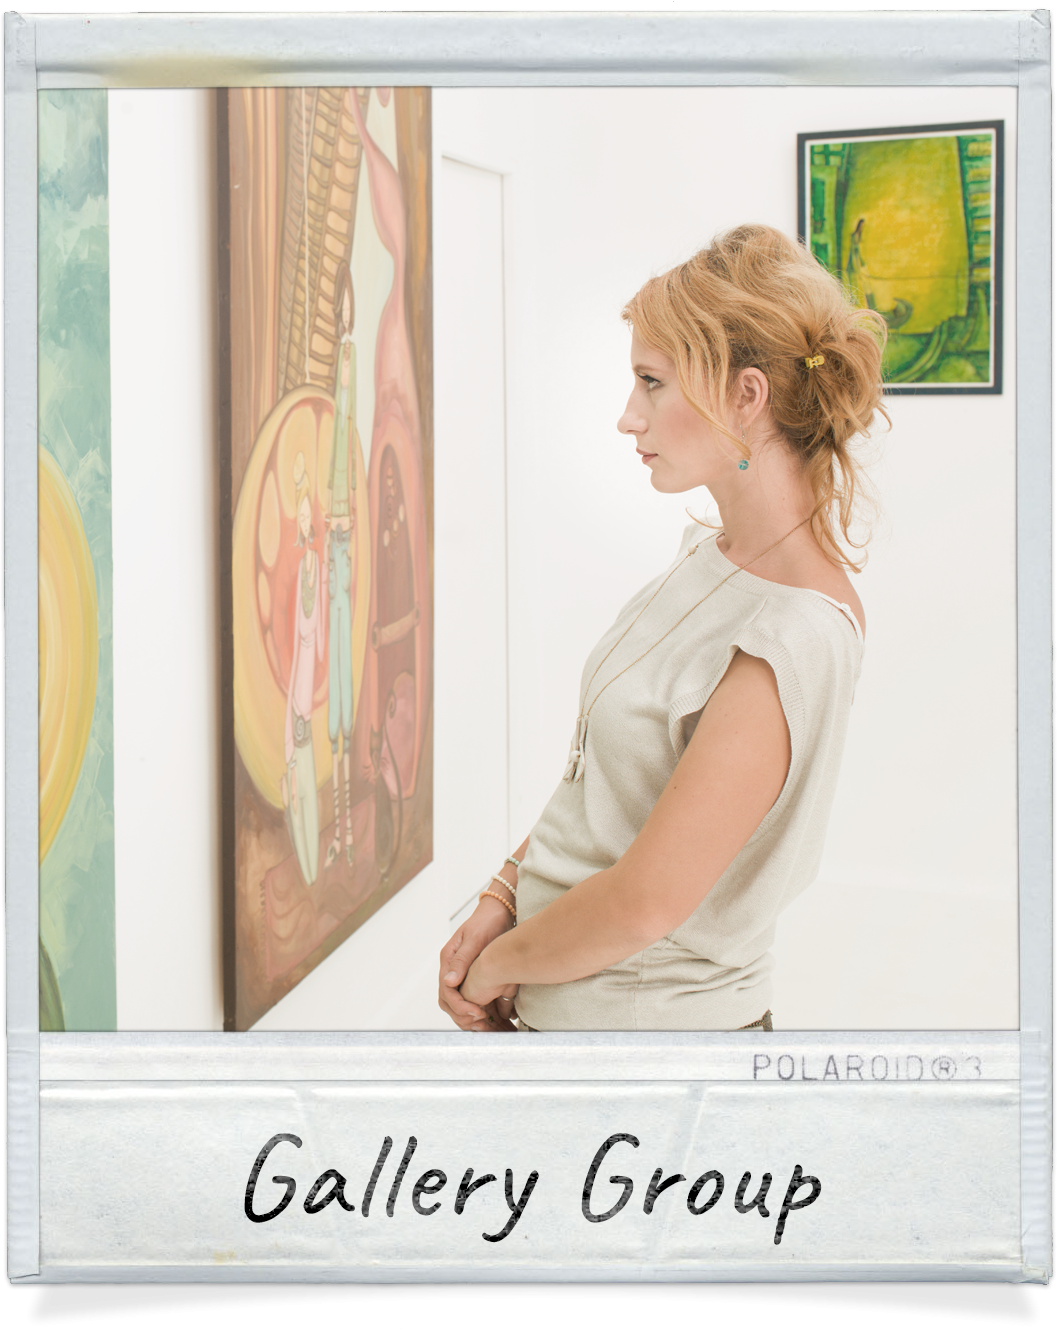 Cannon Beach Gallery Group